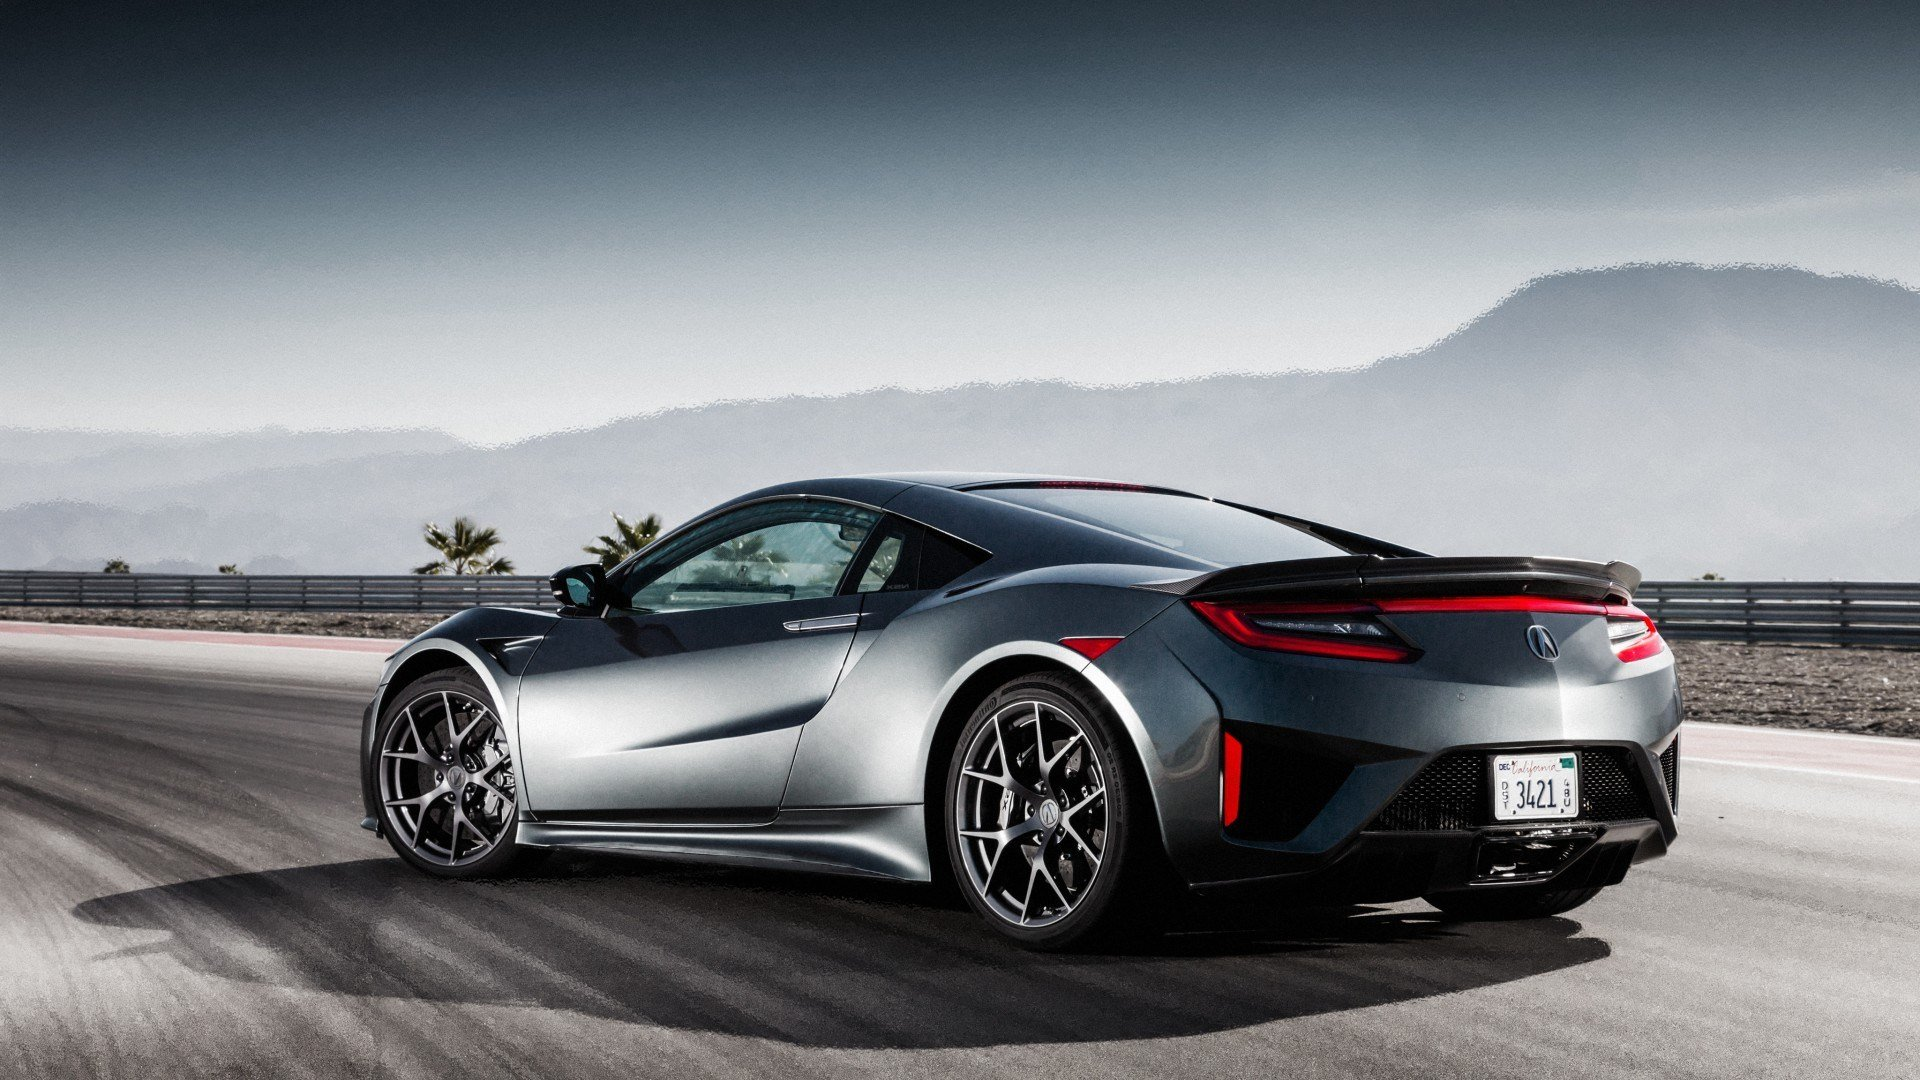 Latest Wallpaper Honda Nsx Acura Nsx Rear View 2017 Cars Free Download